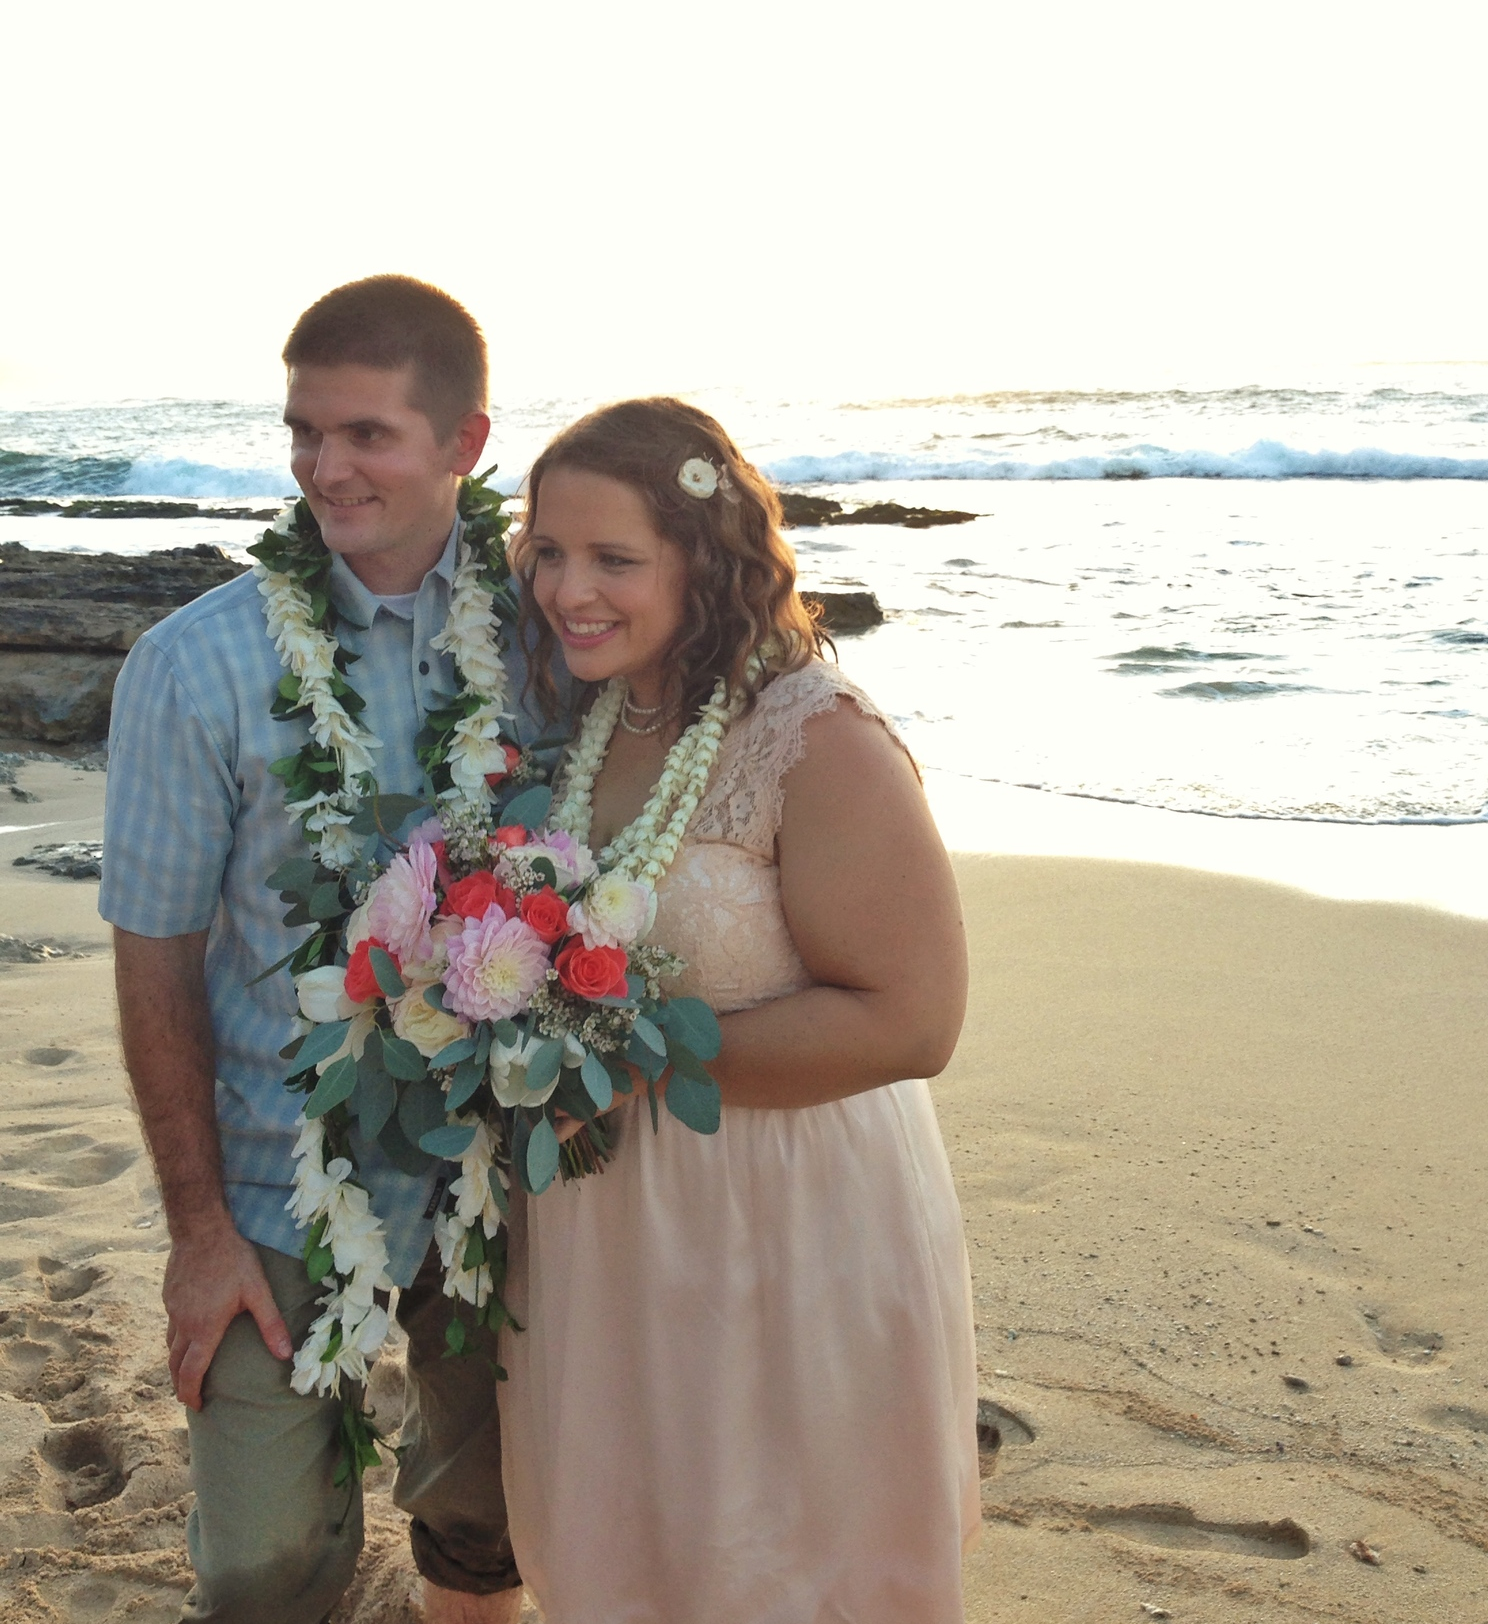 jacqueline-caleb-hawaii-sunset-wedding